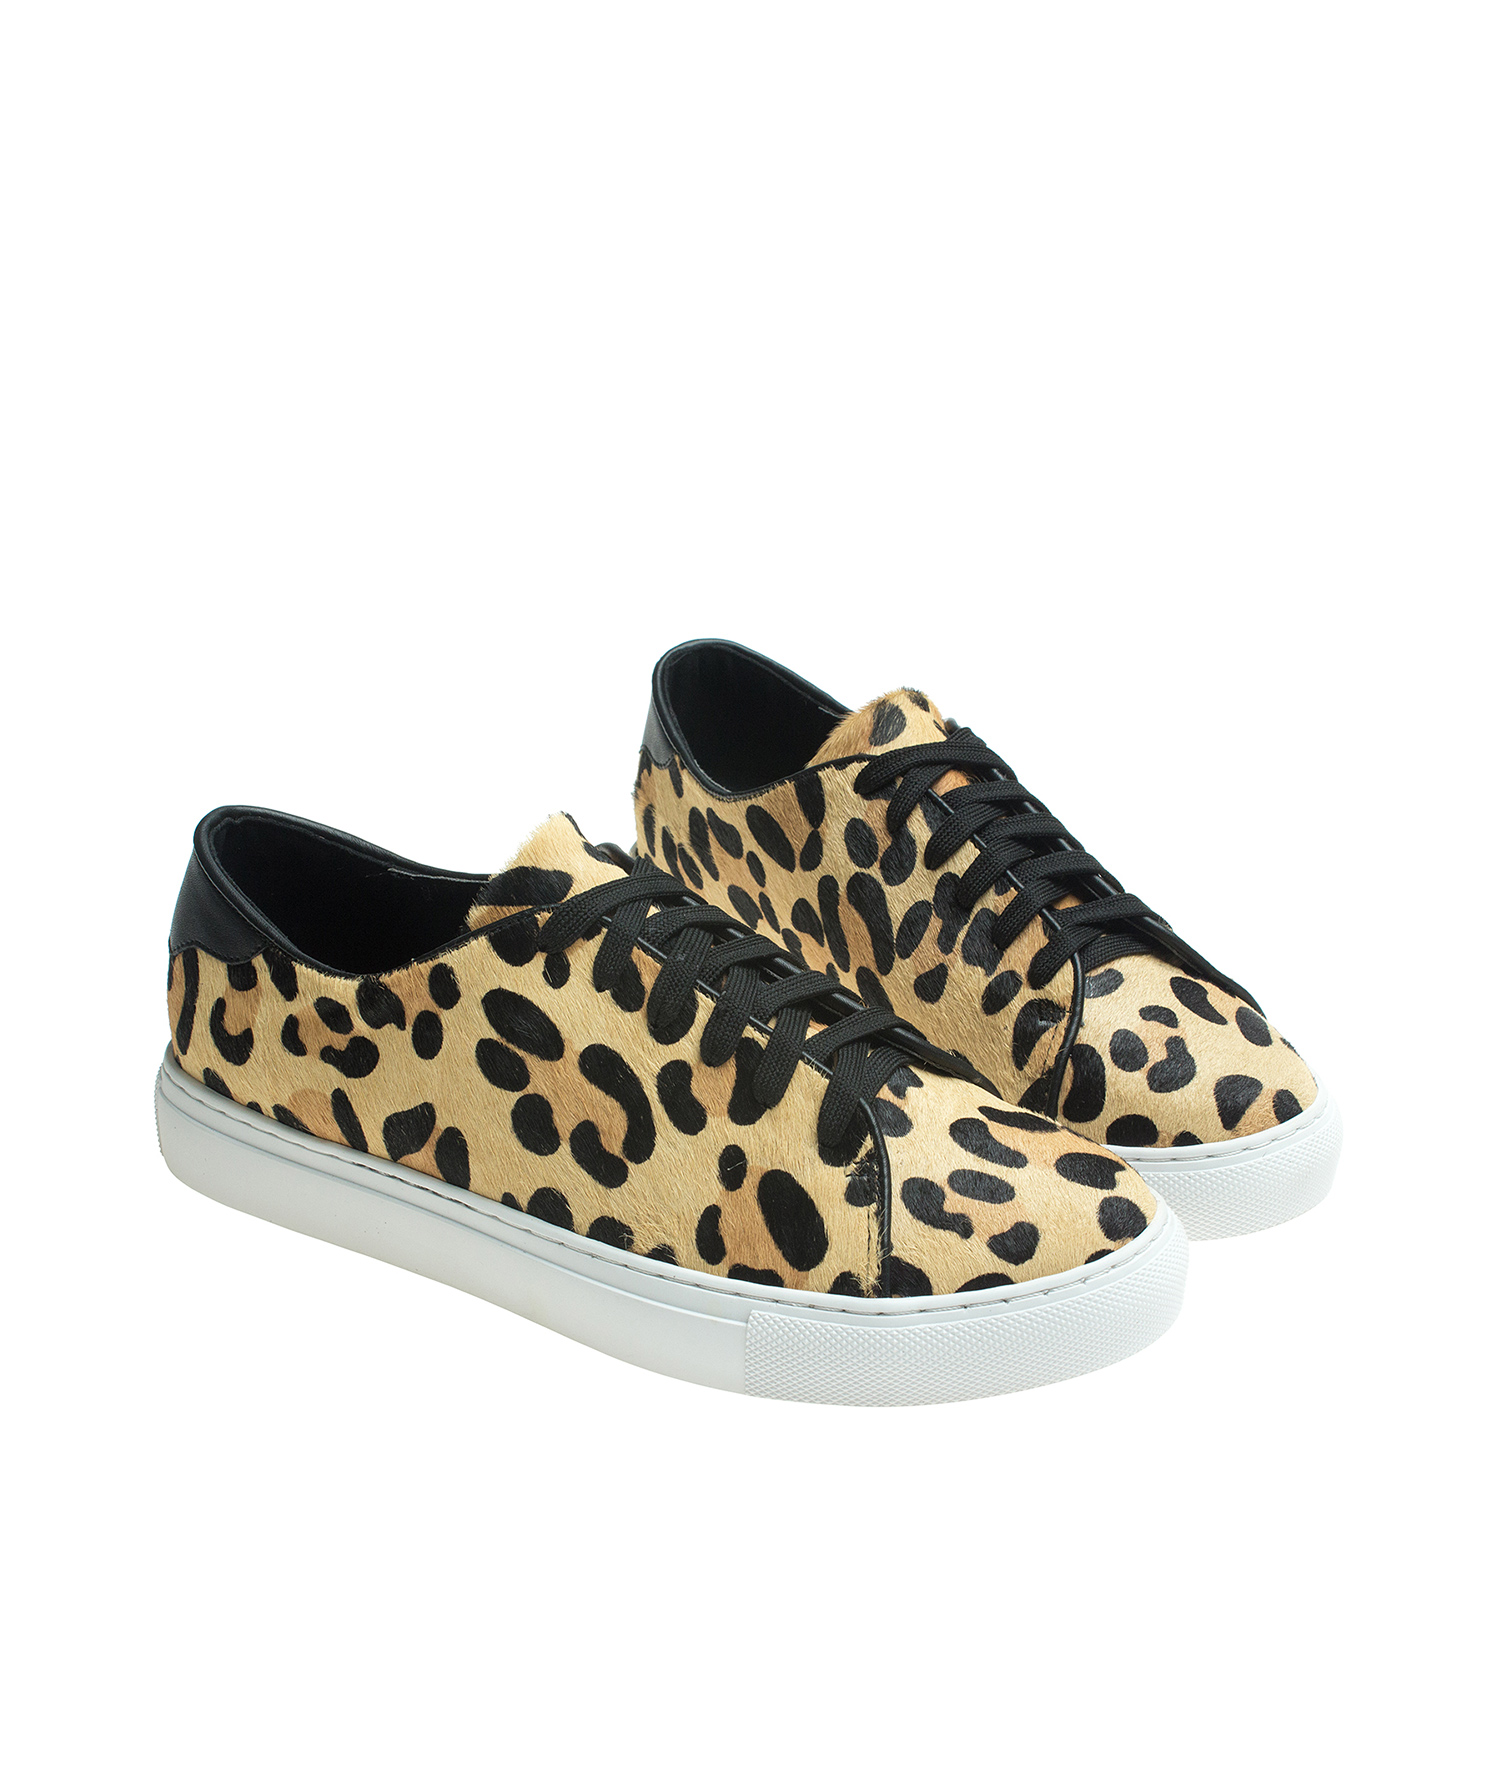 56dfd9306f4f Leopard Print Calf Hair Lace Up Sneakers - annakastleshoes.com